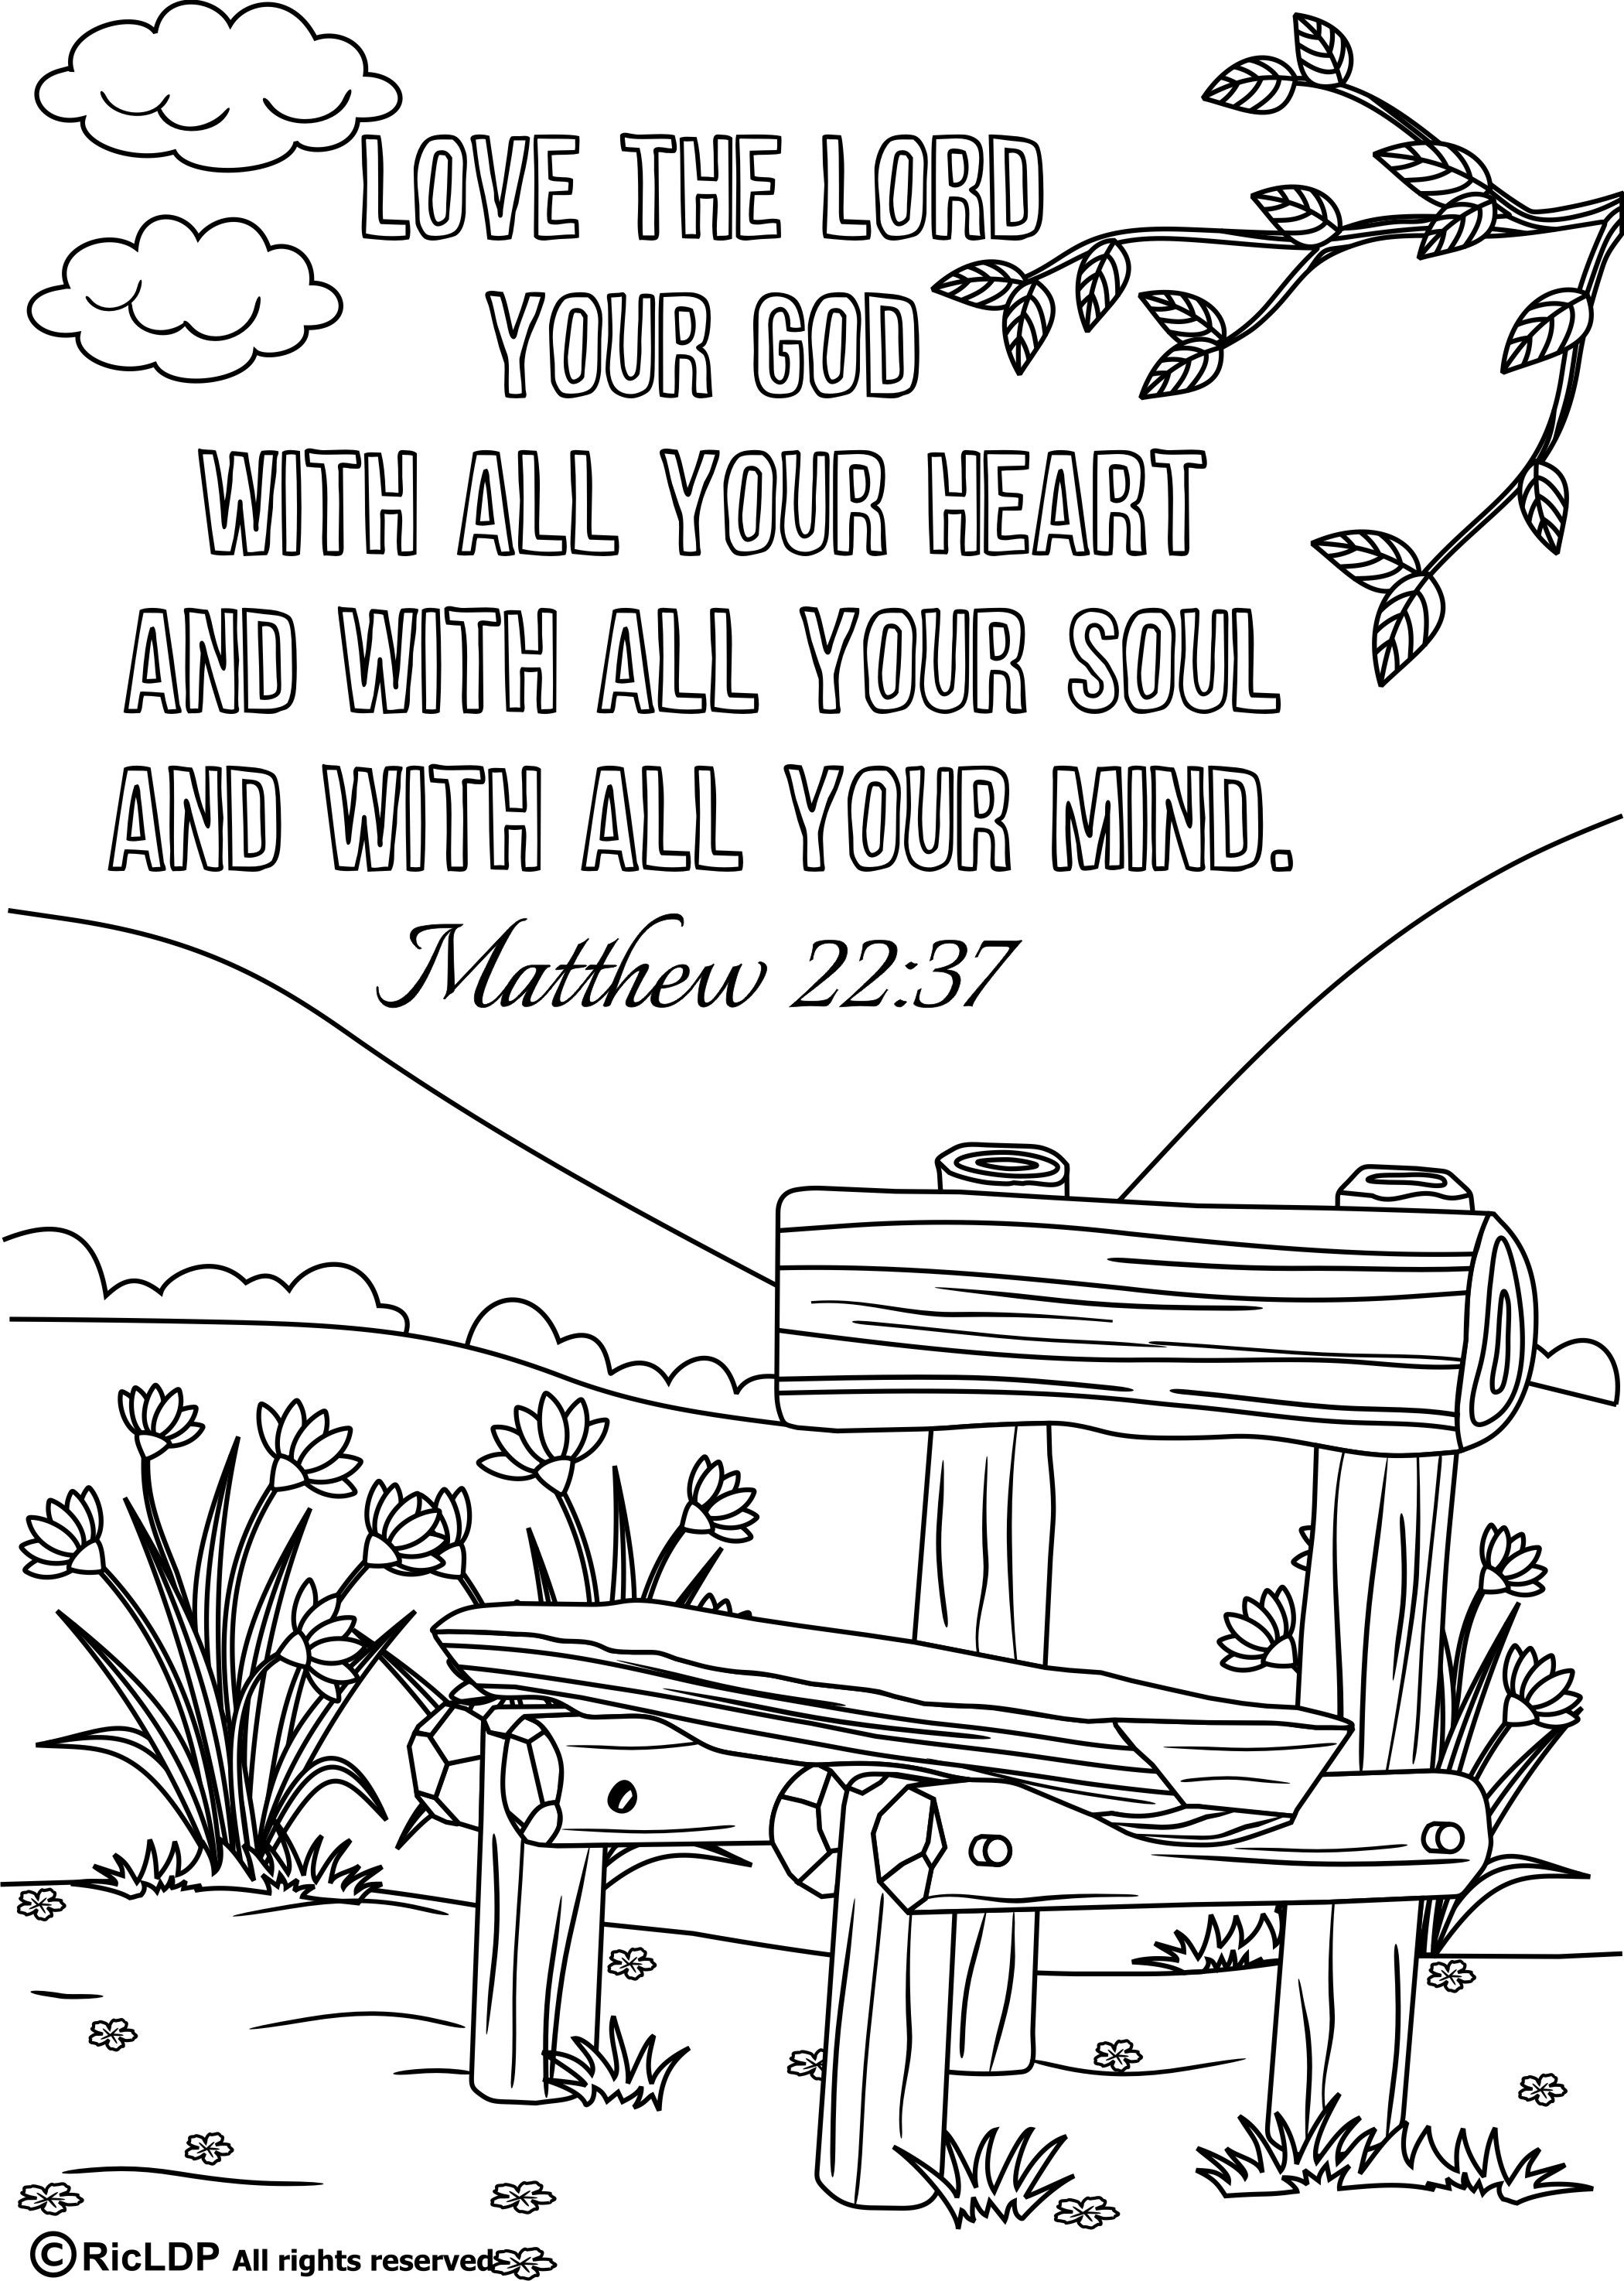 Coloring Pages Pdf : Printable bible verse coloring pages verses